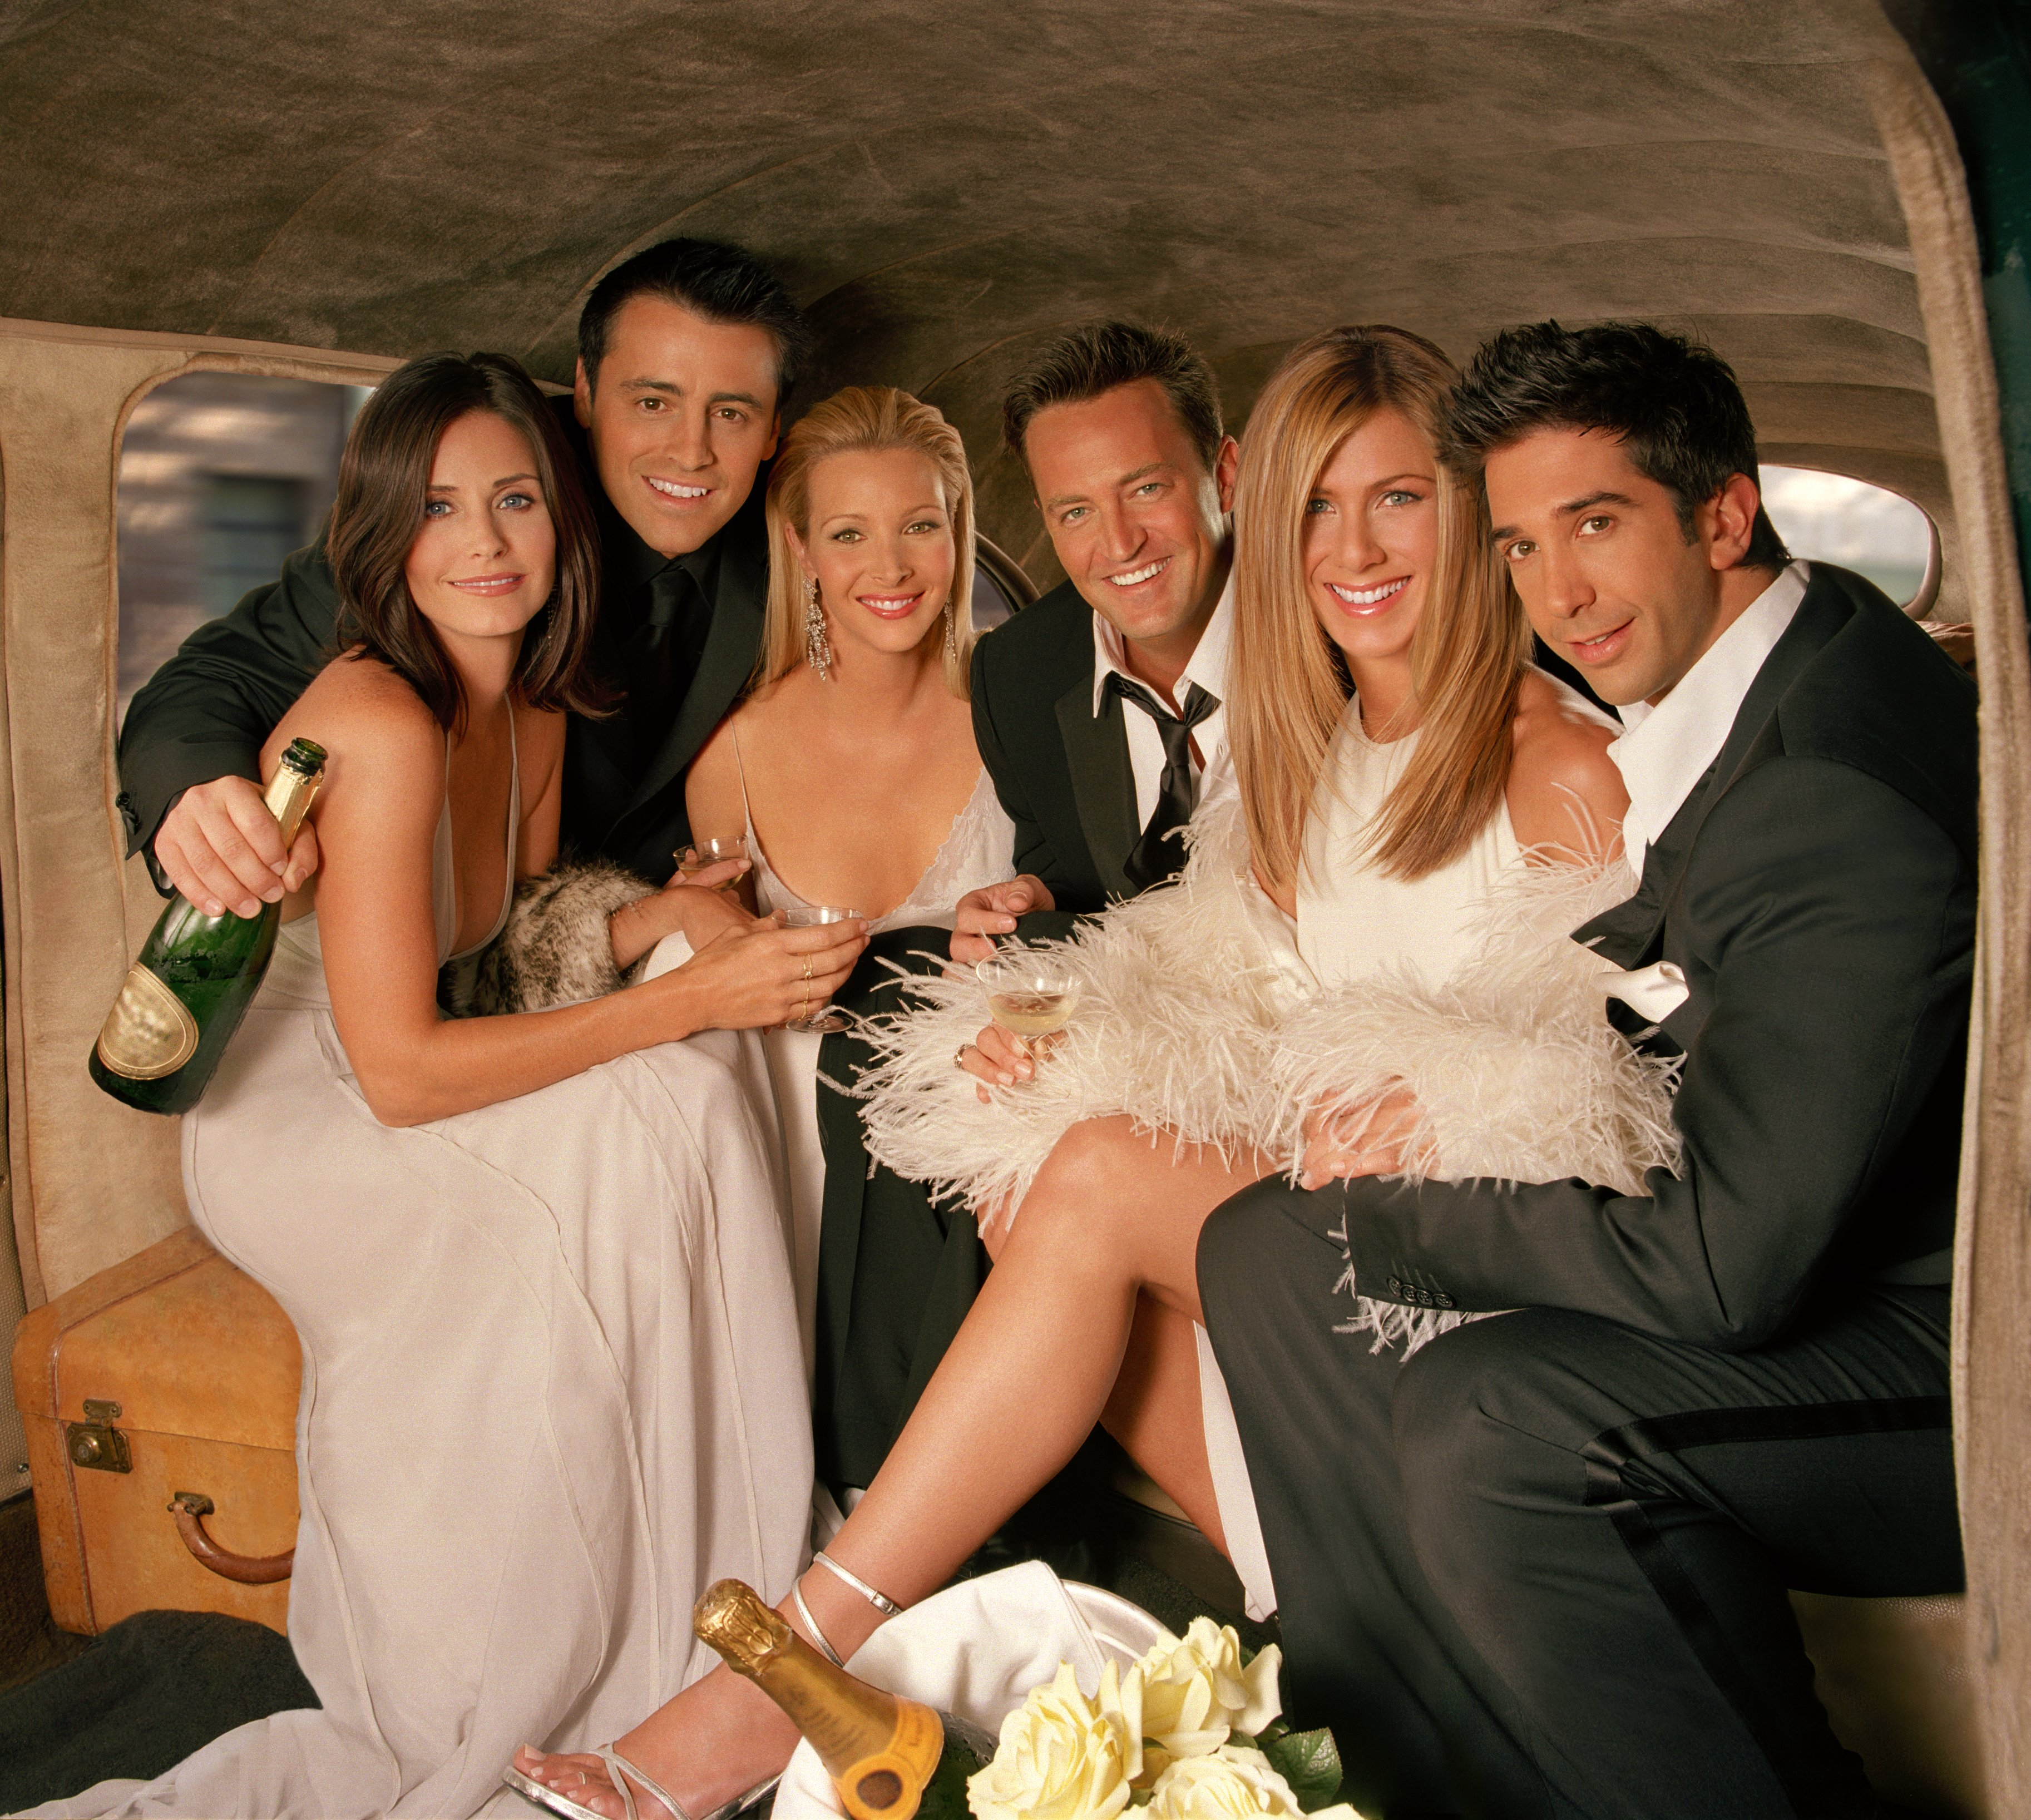 As Friends celebrates its 20th anniversary: 19 Friends facts you ACTUALLY really didn't know